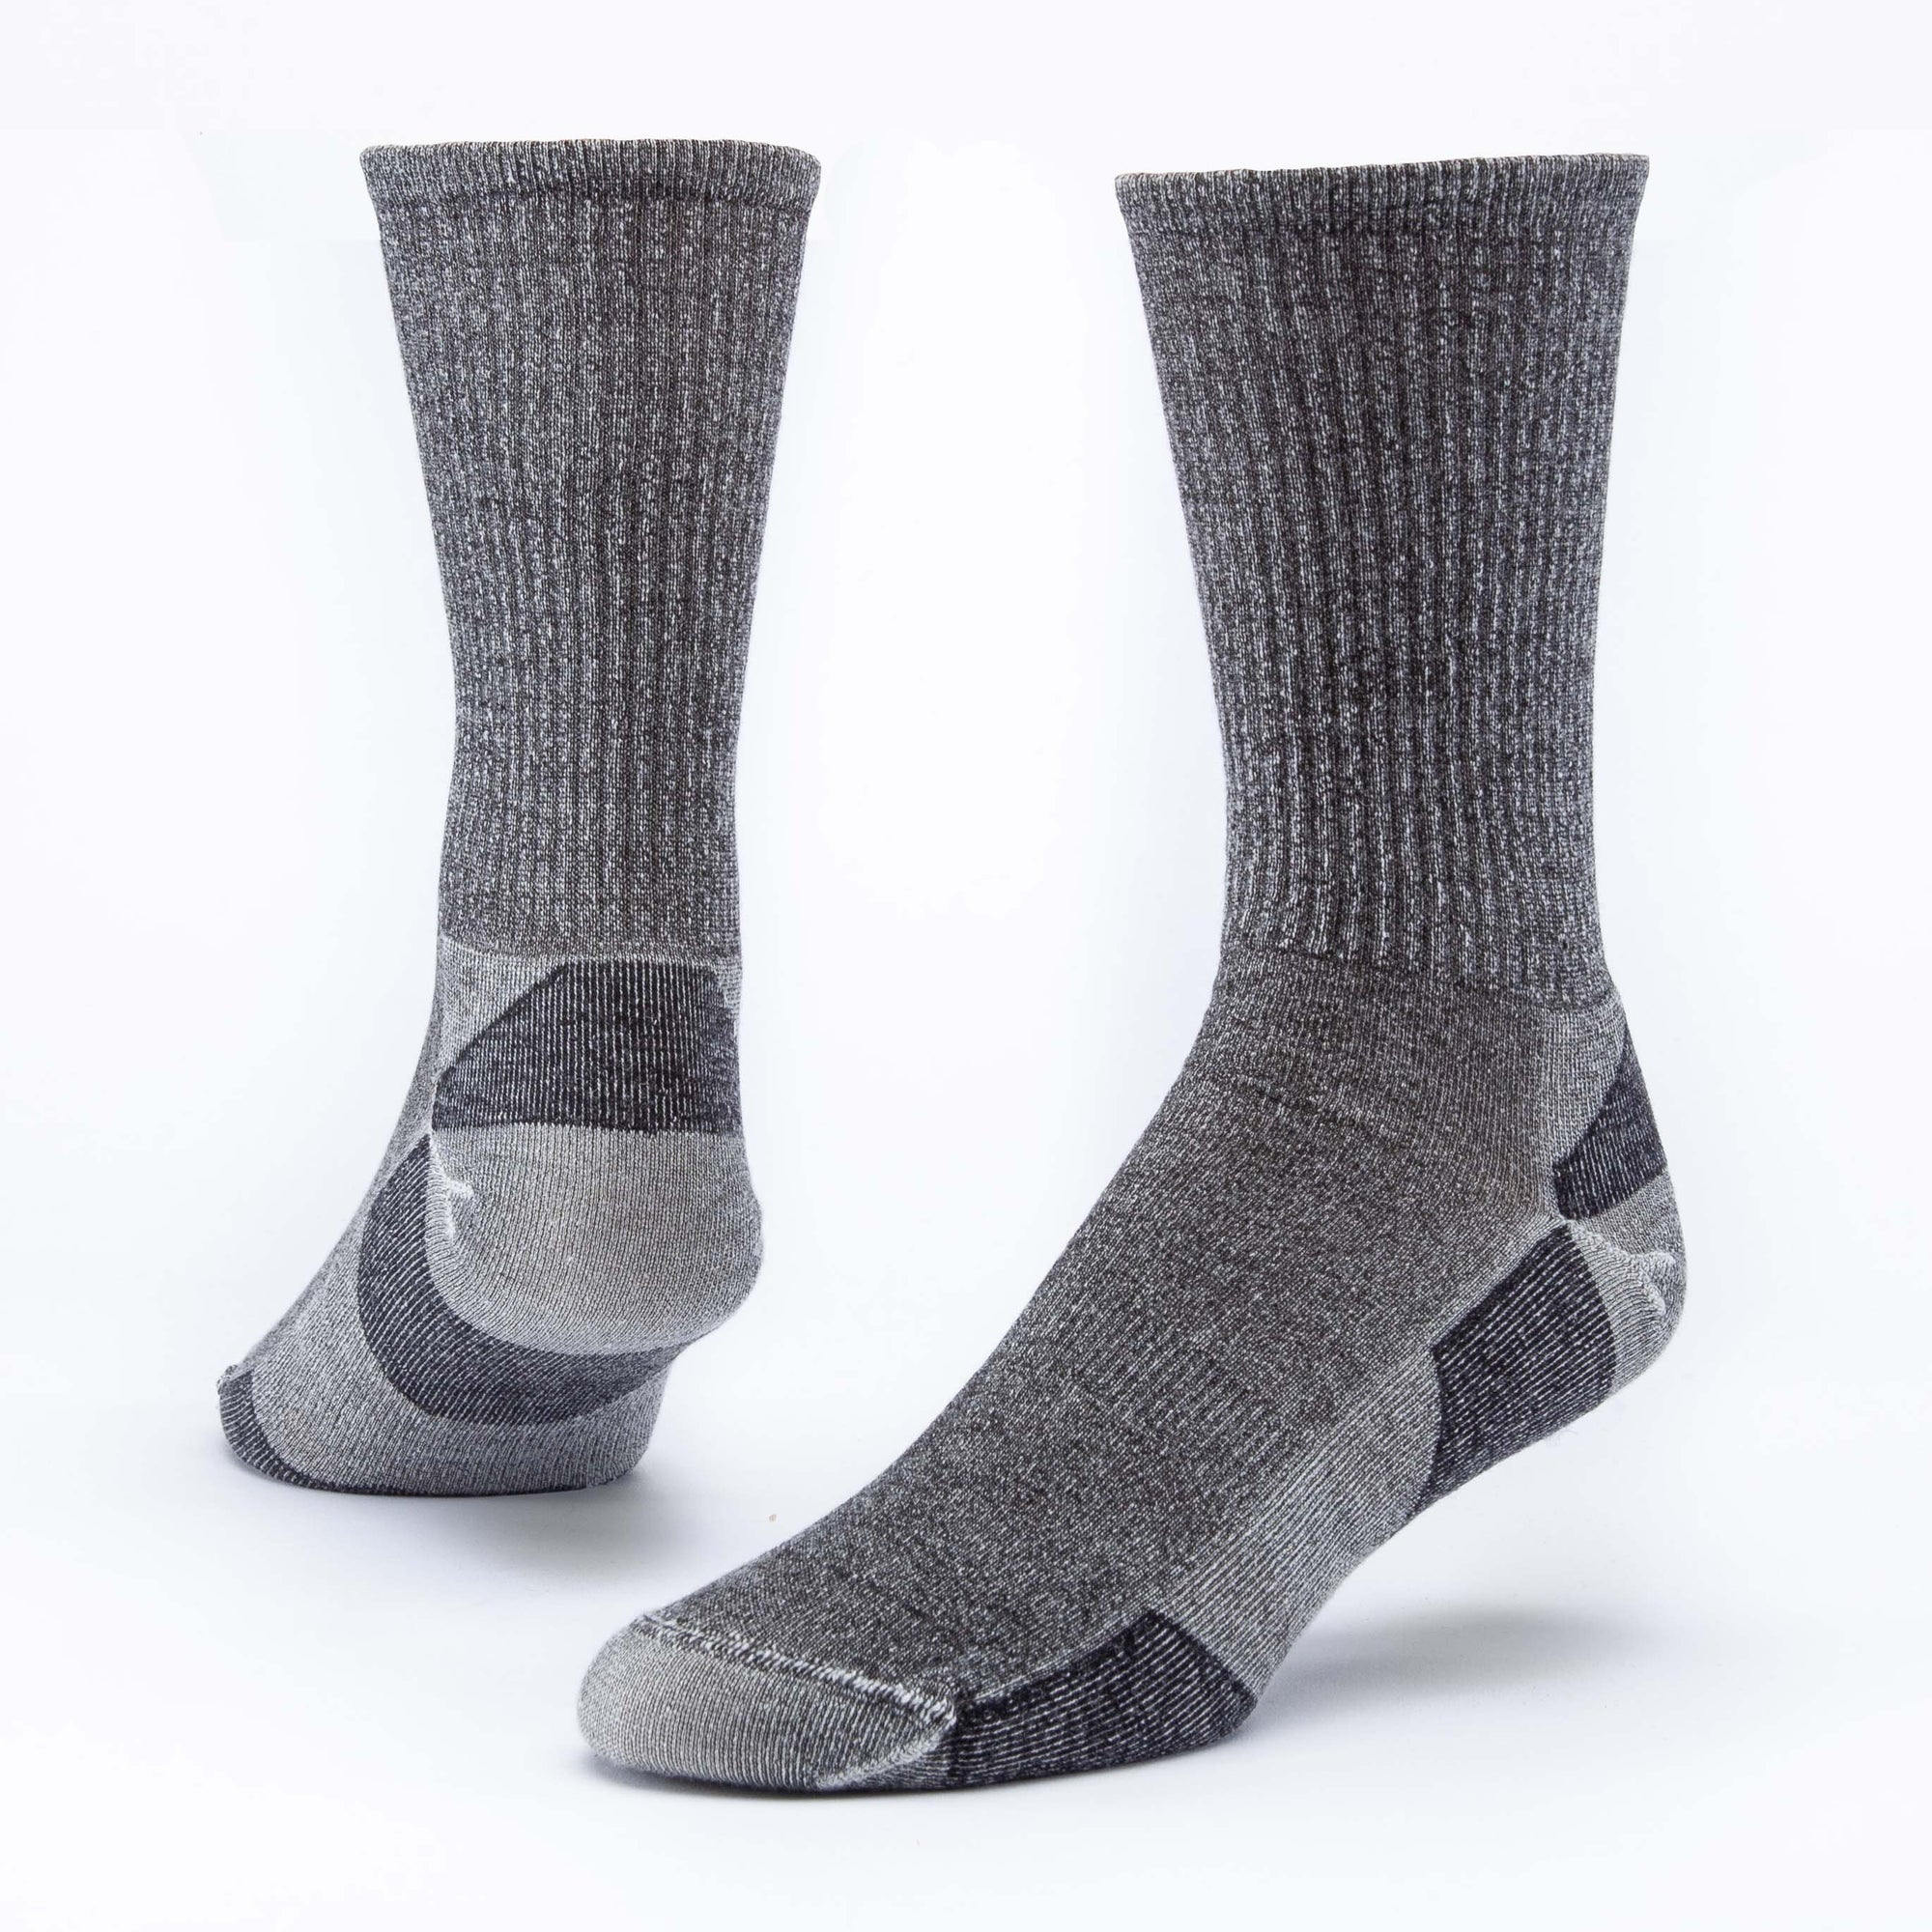 Organic Wool Urban Hiker Socks - Crew (IS)